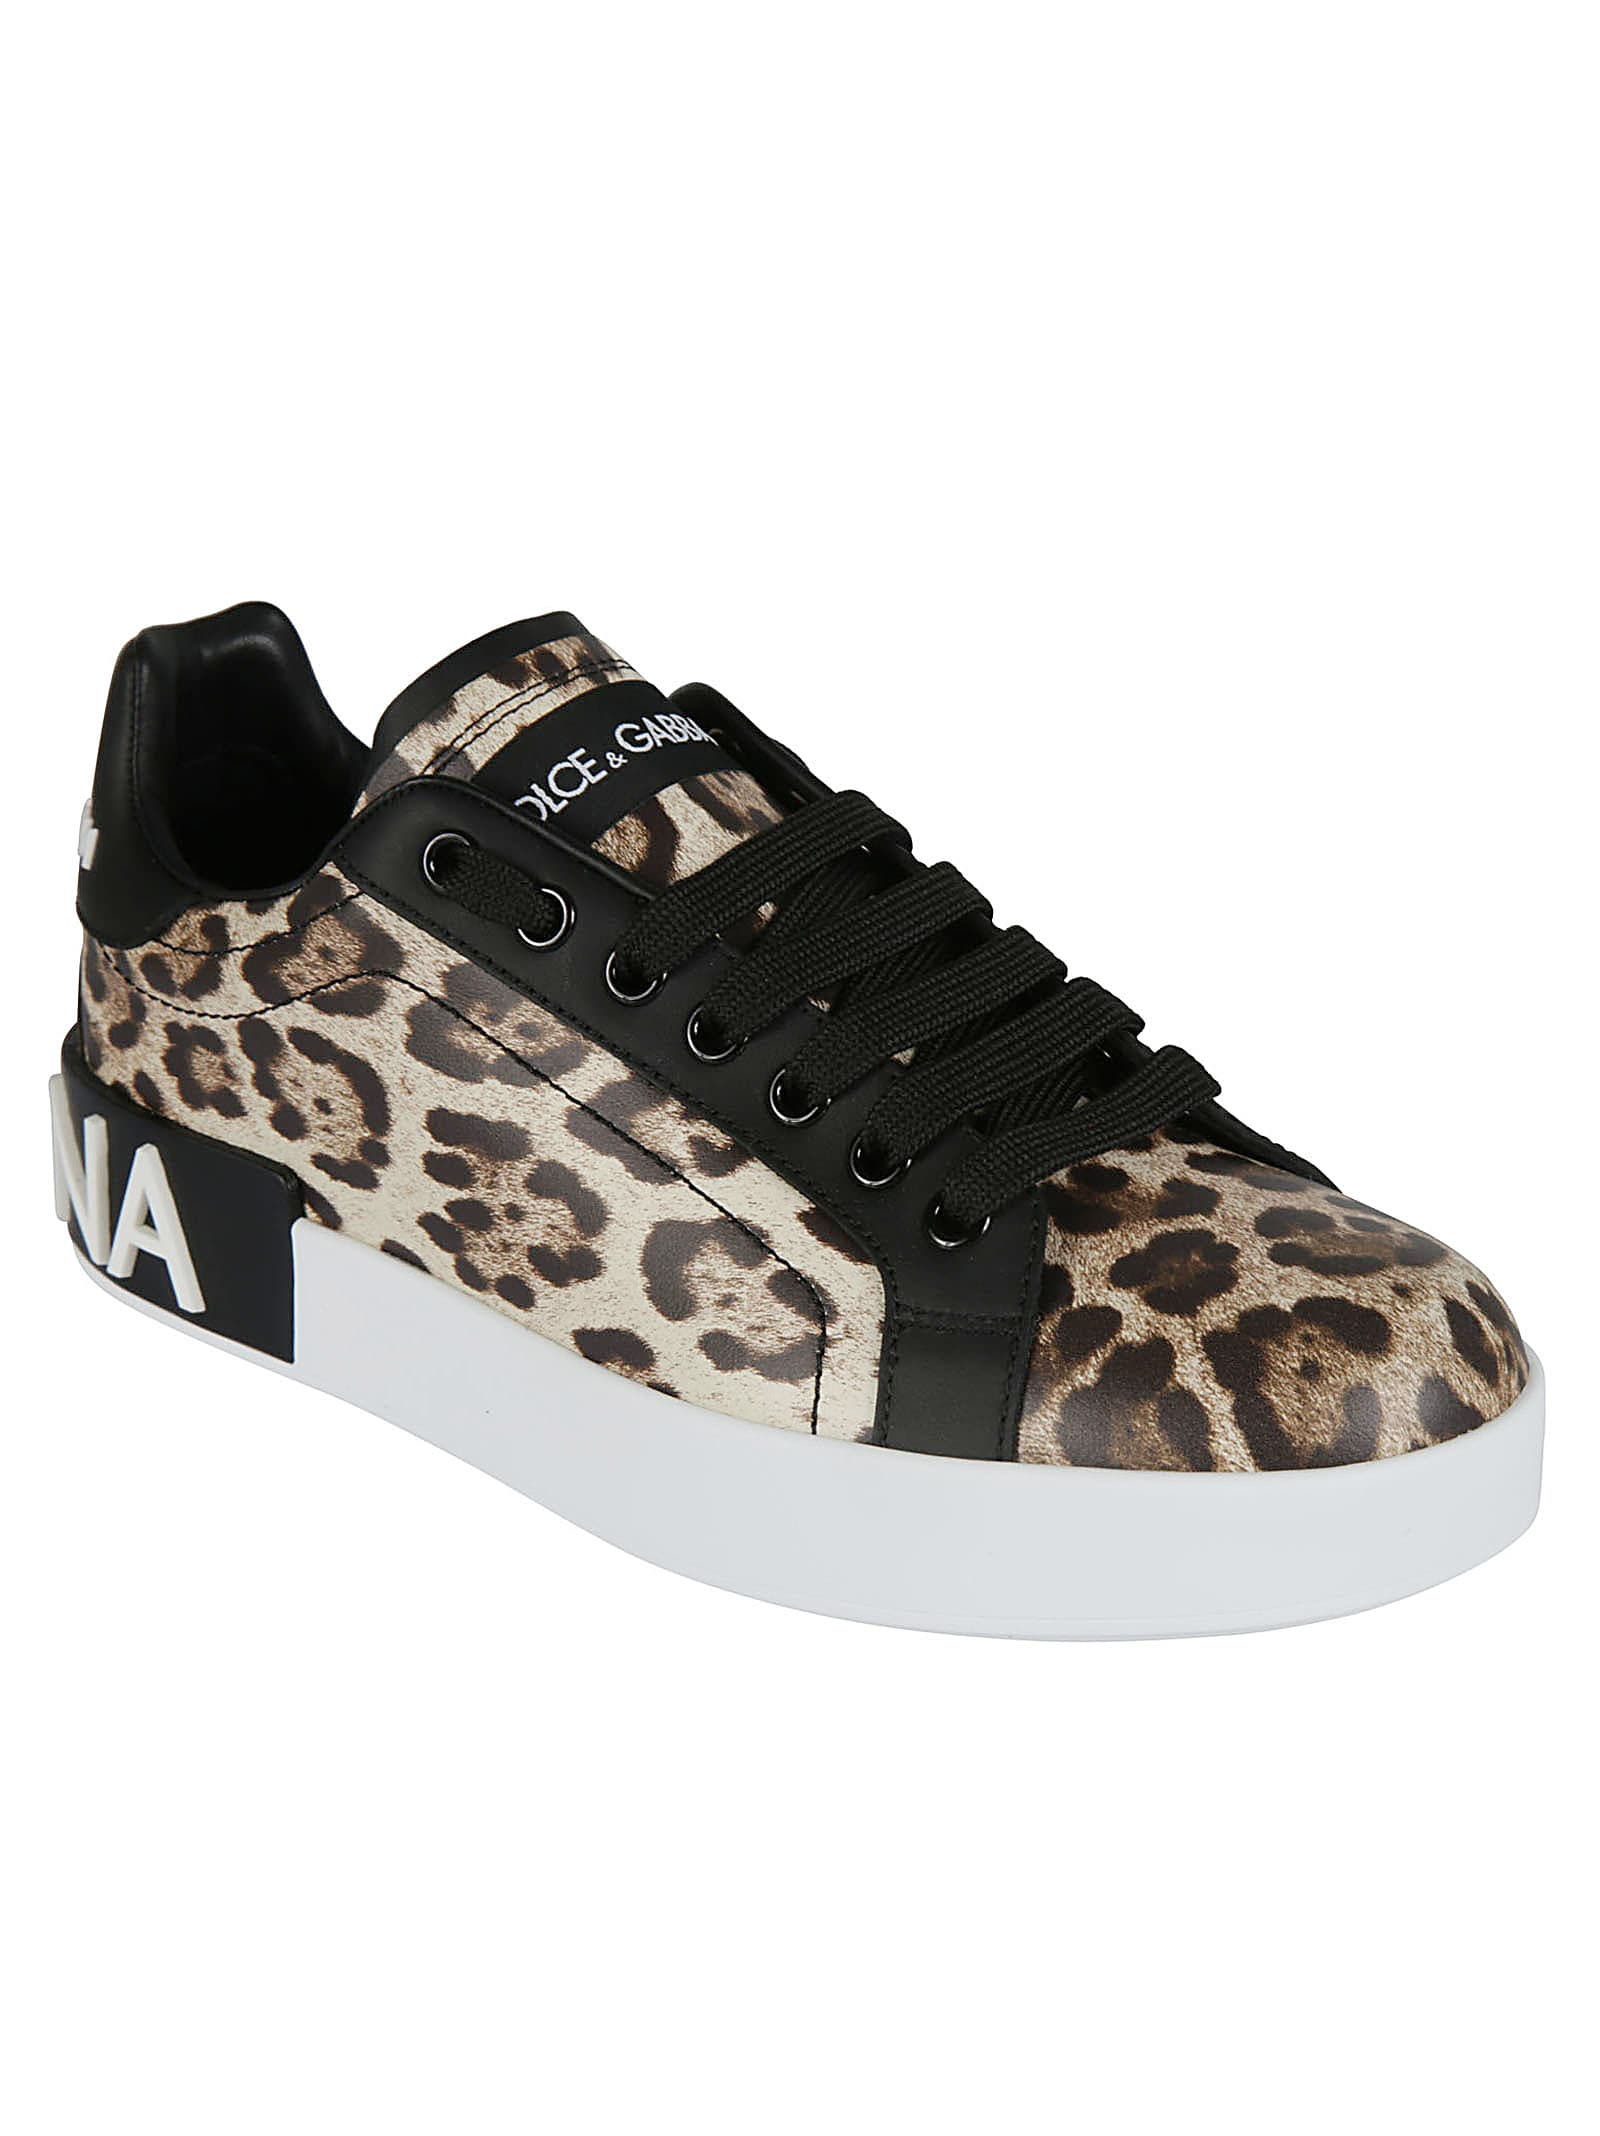 Cheap And Nice Dolce & Gabbana Leopard Print Sneakers - Great Deals